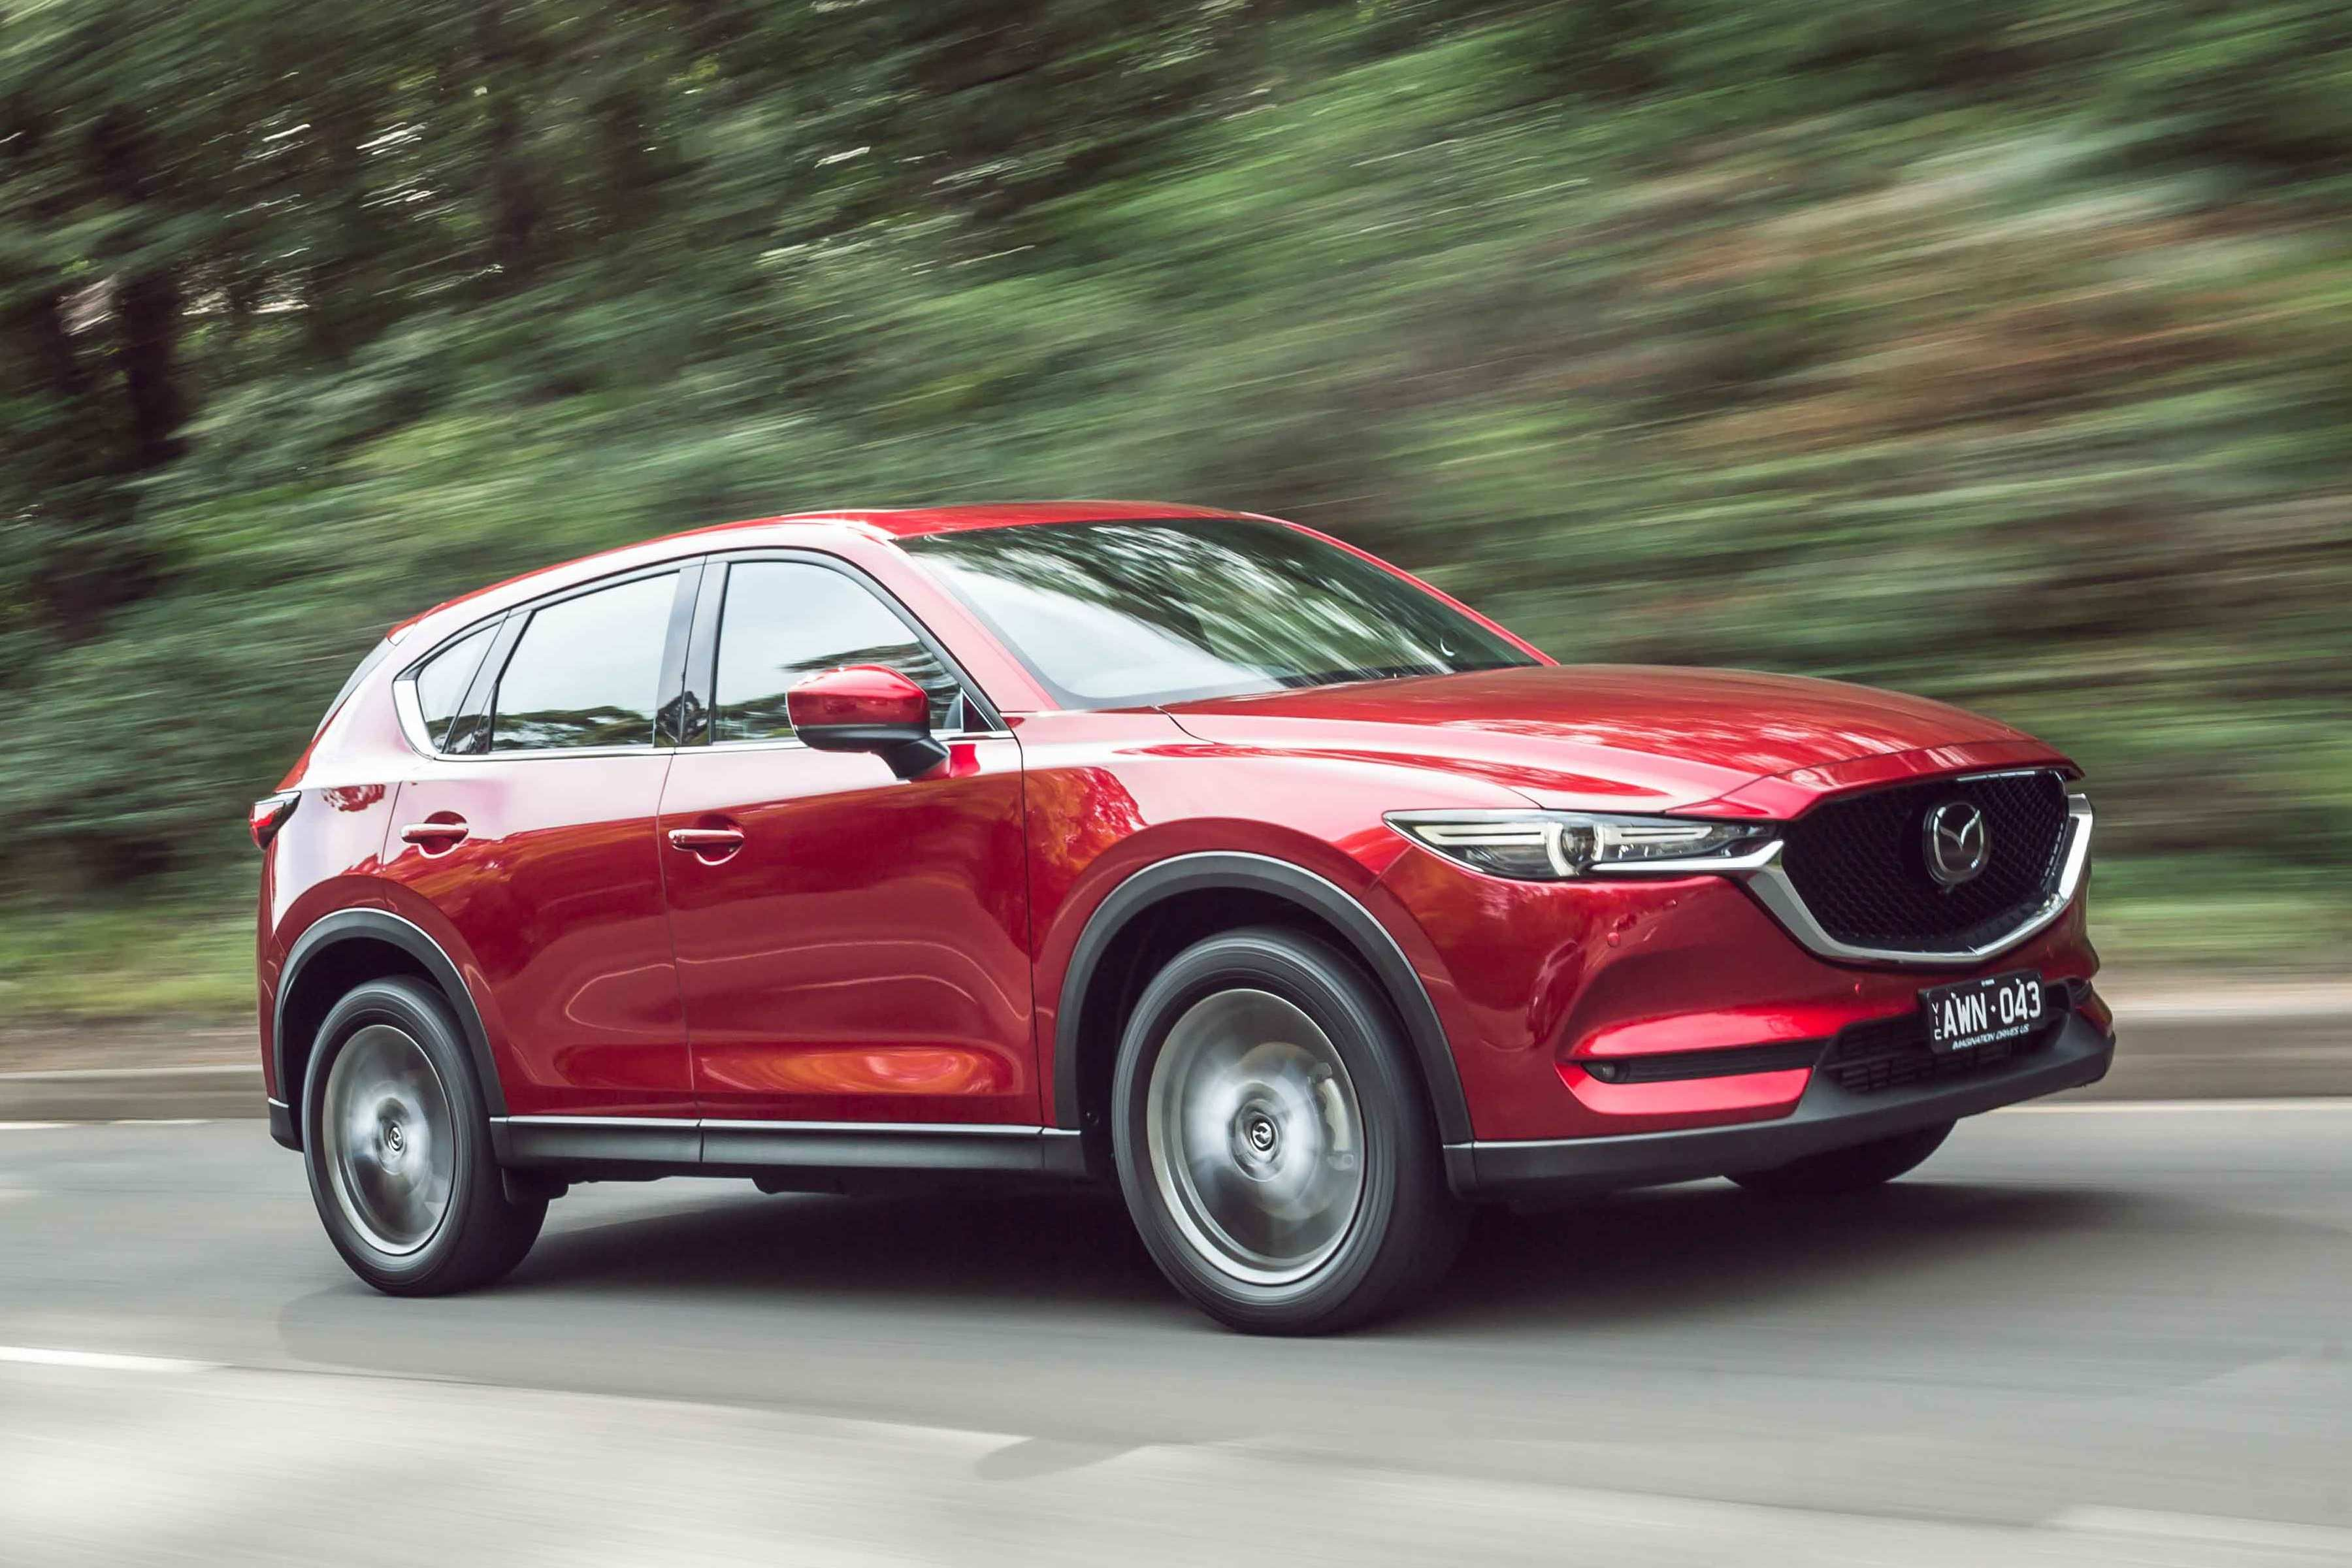 20 Gallery of New Mazda Jeep 2019 New Review Style by New Mazda Jeep 2019 New Review